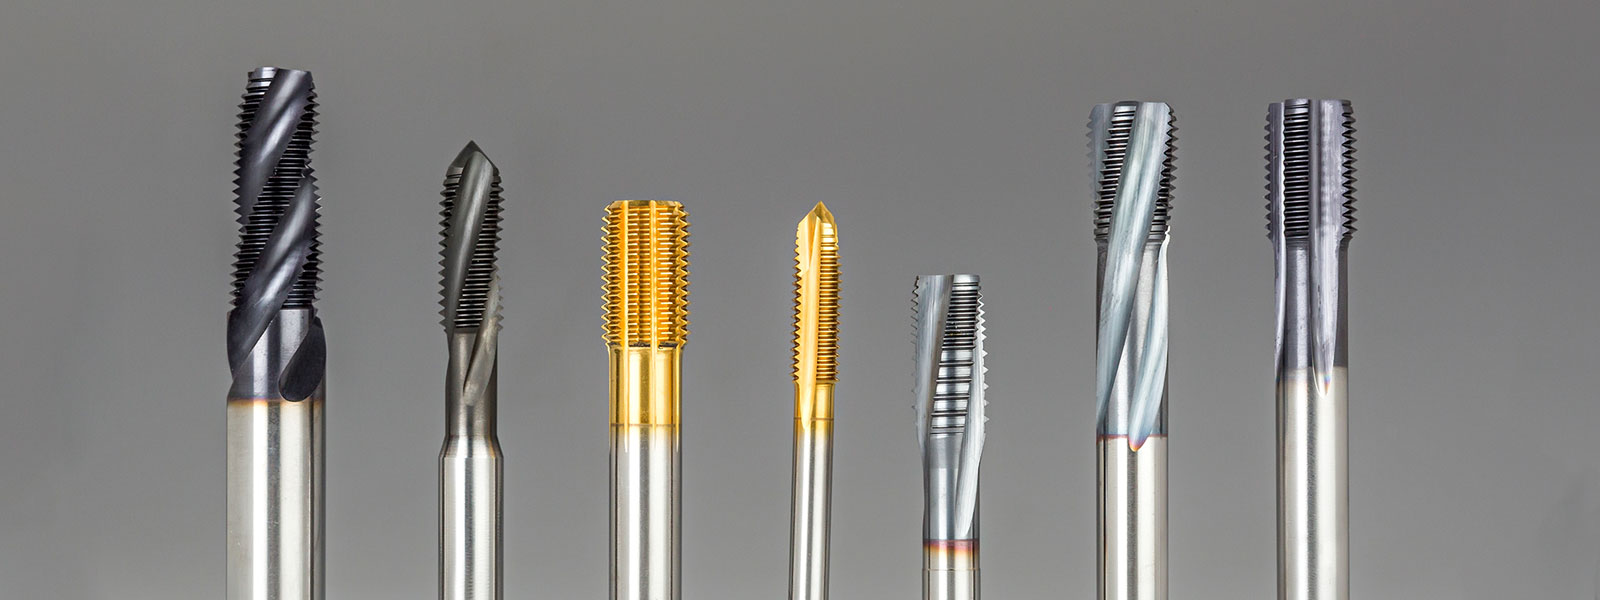 Manufacturer of Cutting Tools | Precision Engineering Tools